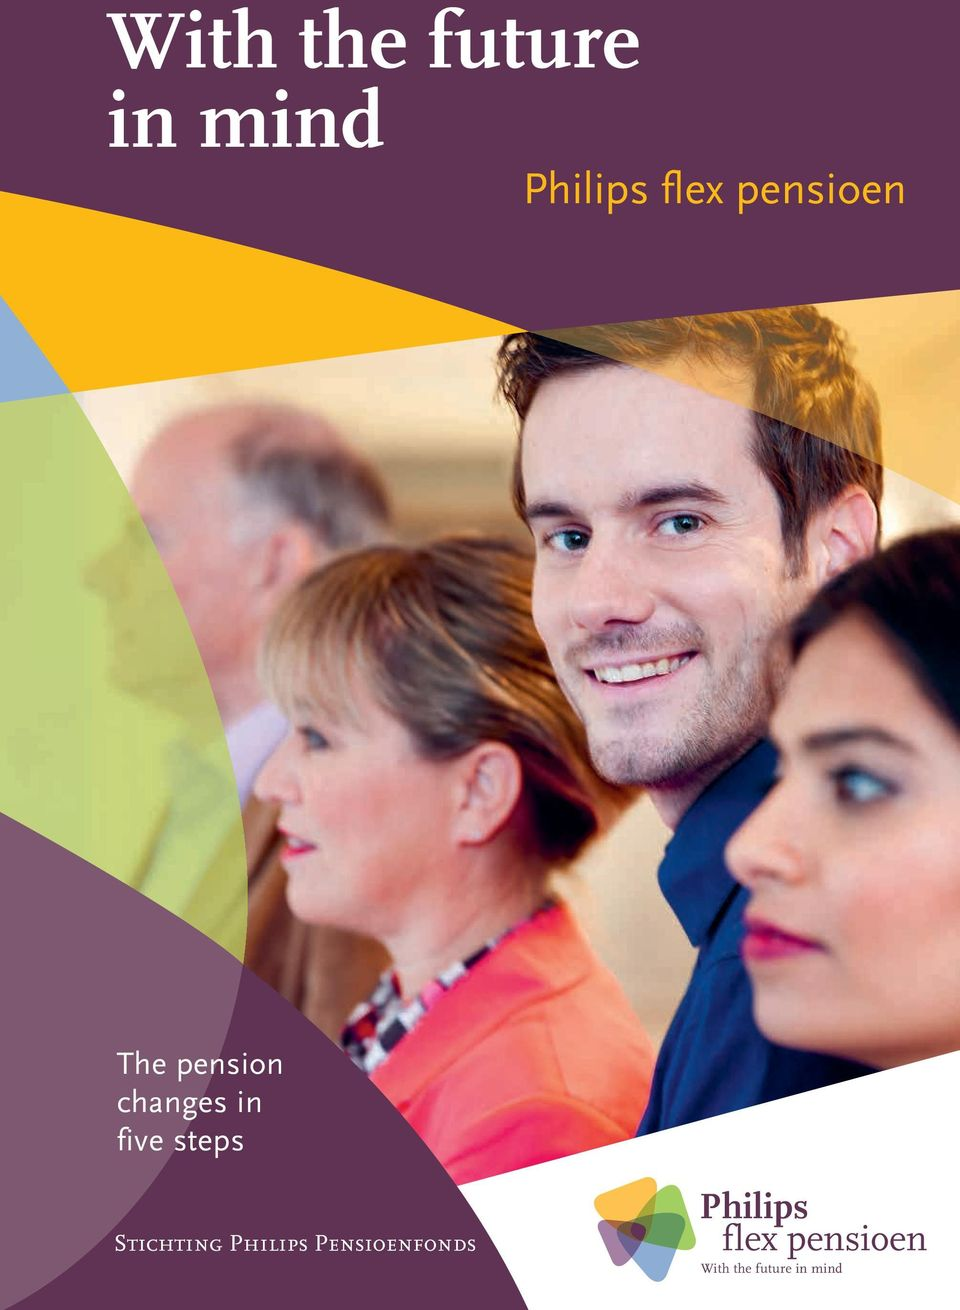 pension changes in five steps Stichting Philips